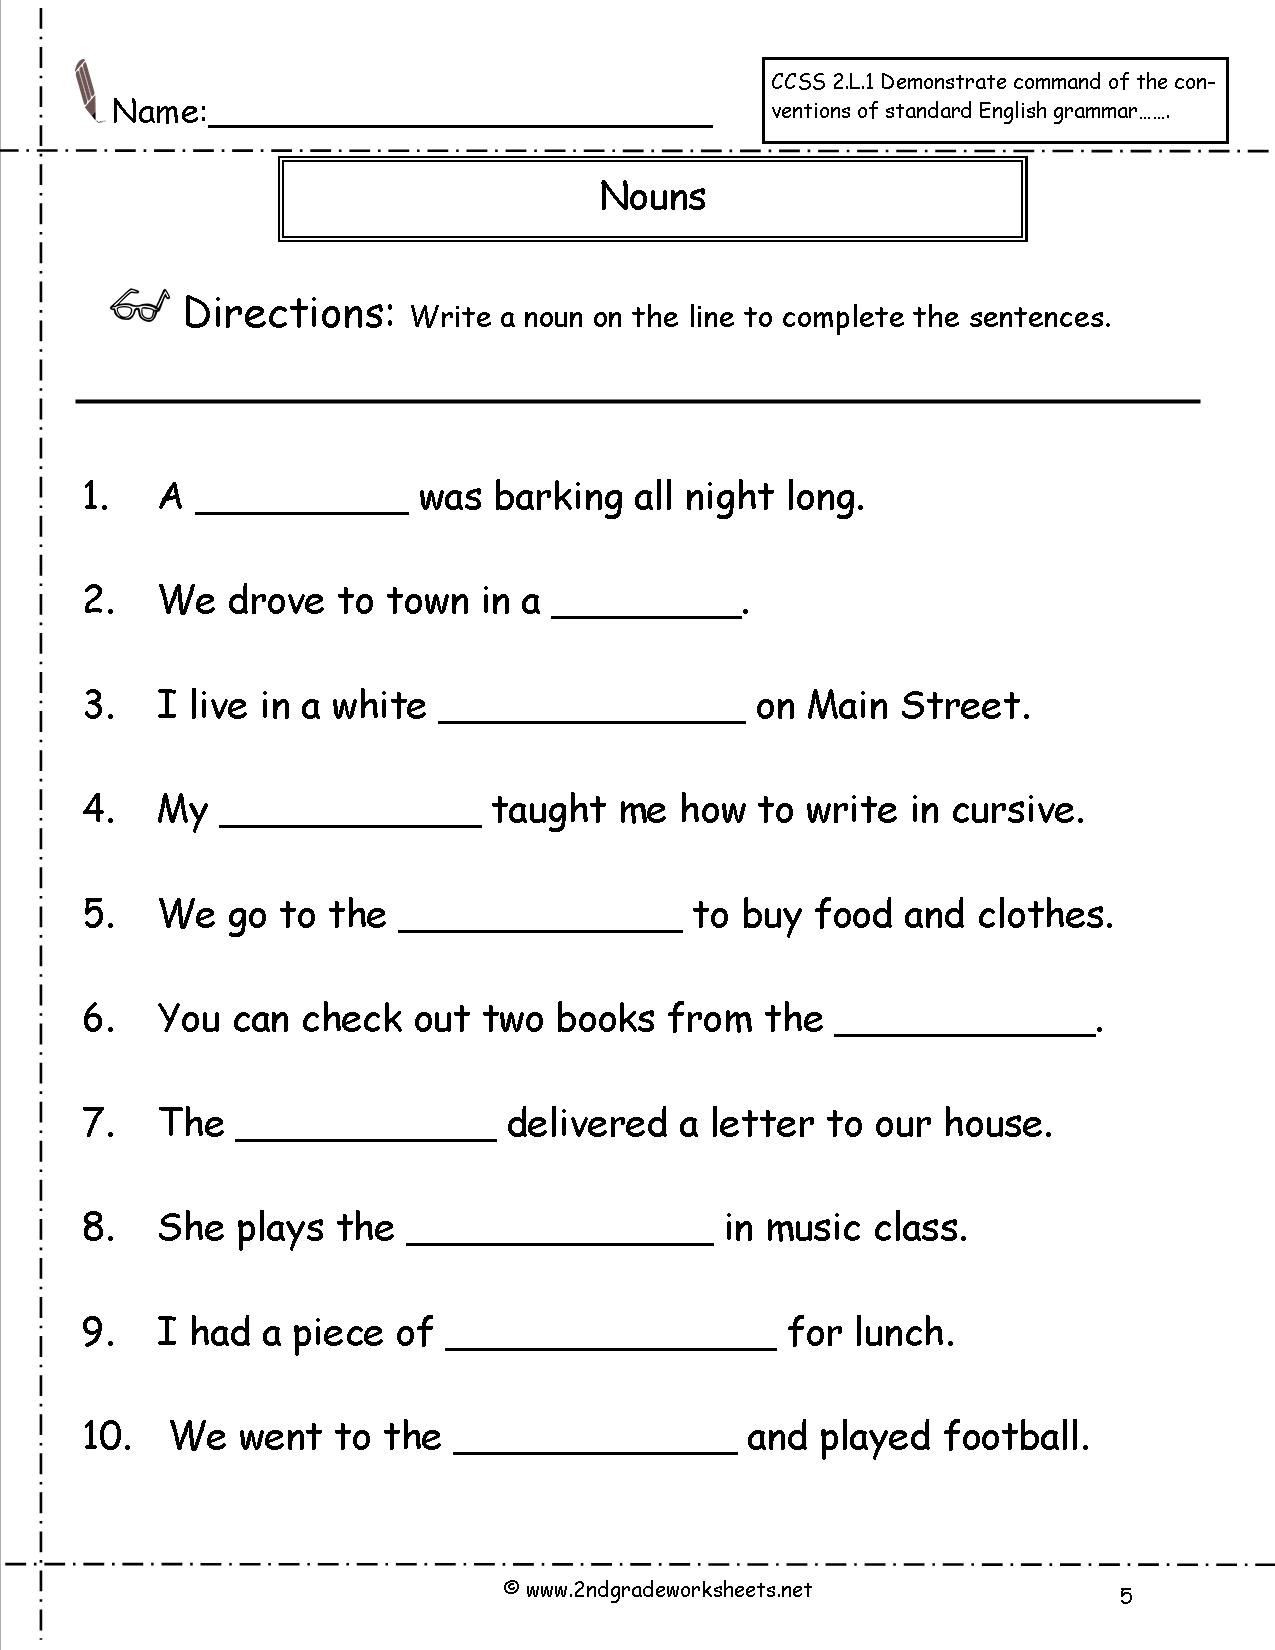 Commas Worksheet 4th Grade English Grammar Noun Worksheet for Grade 1 Elegant Nouns